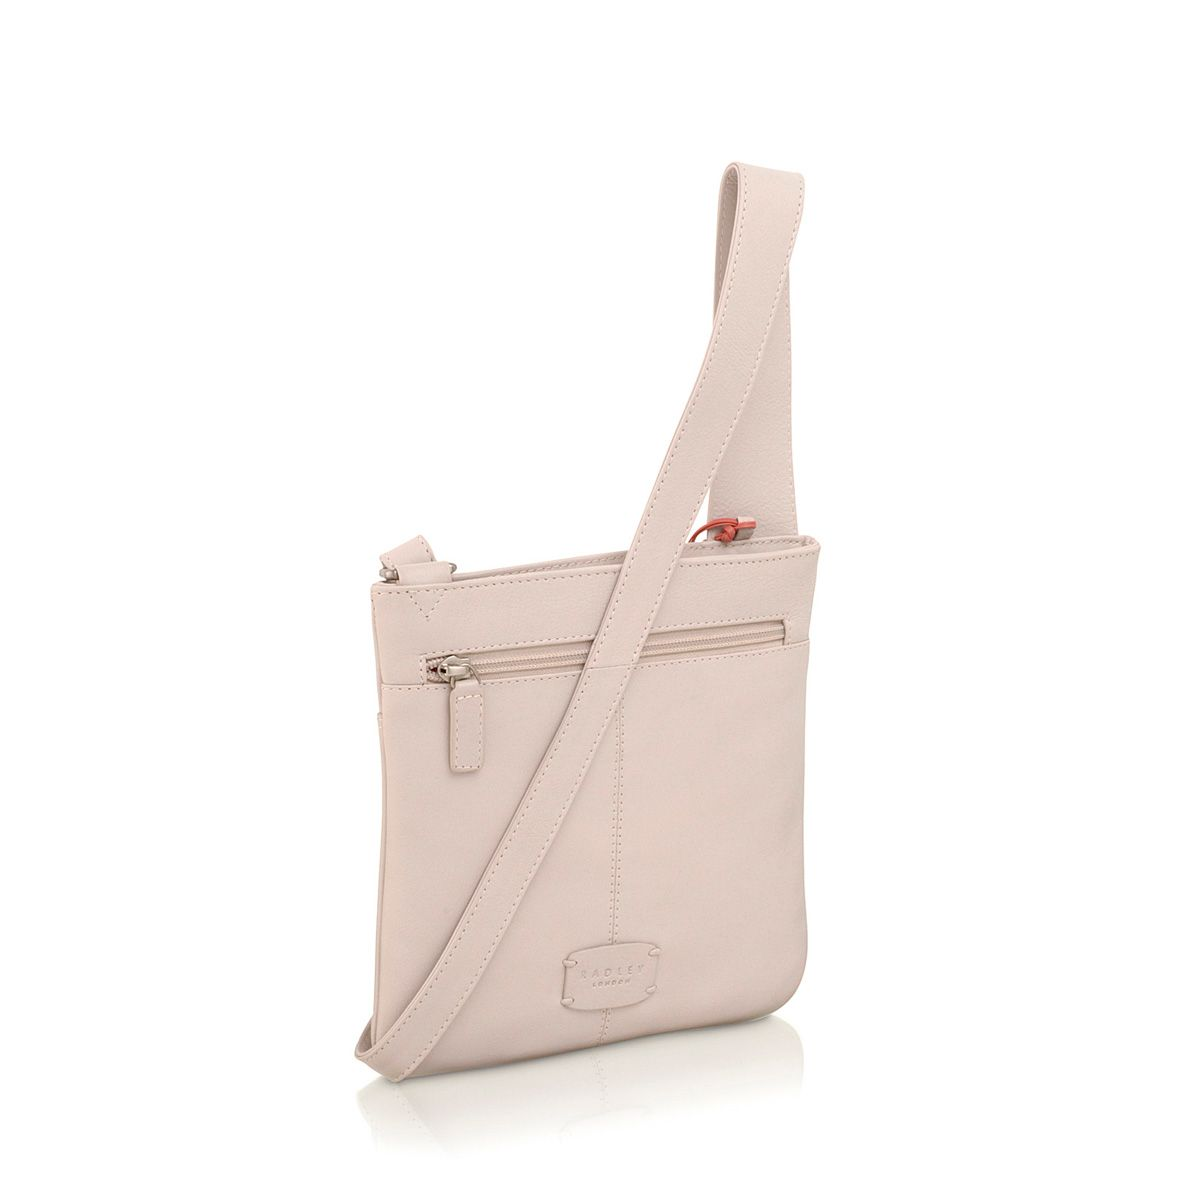 Neutral small pocket bag